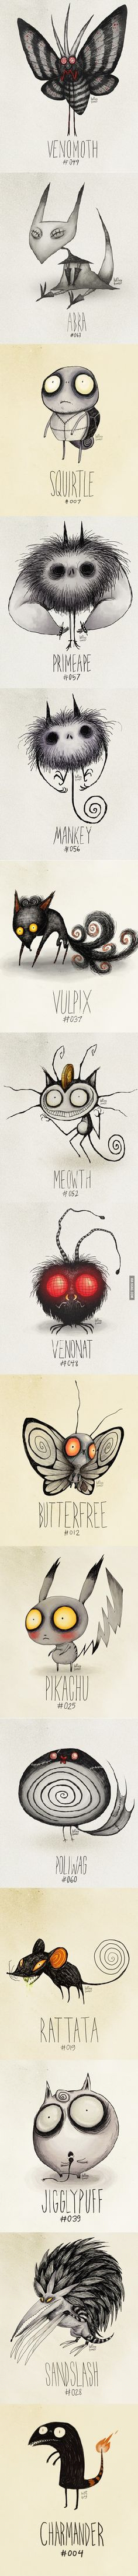 If Tim Burton was doing Pokemon...THIS is what theyd look like...hahahahahaha